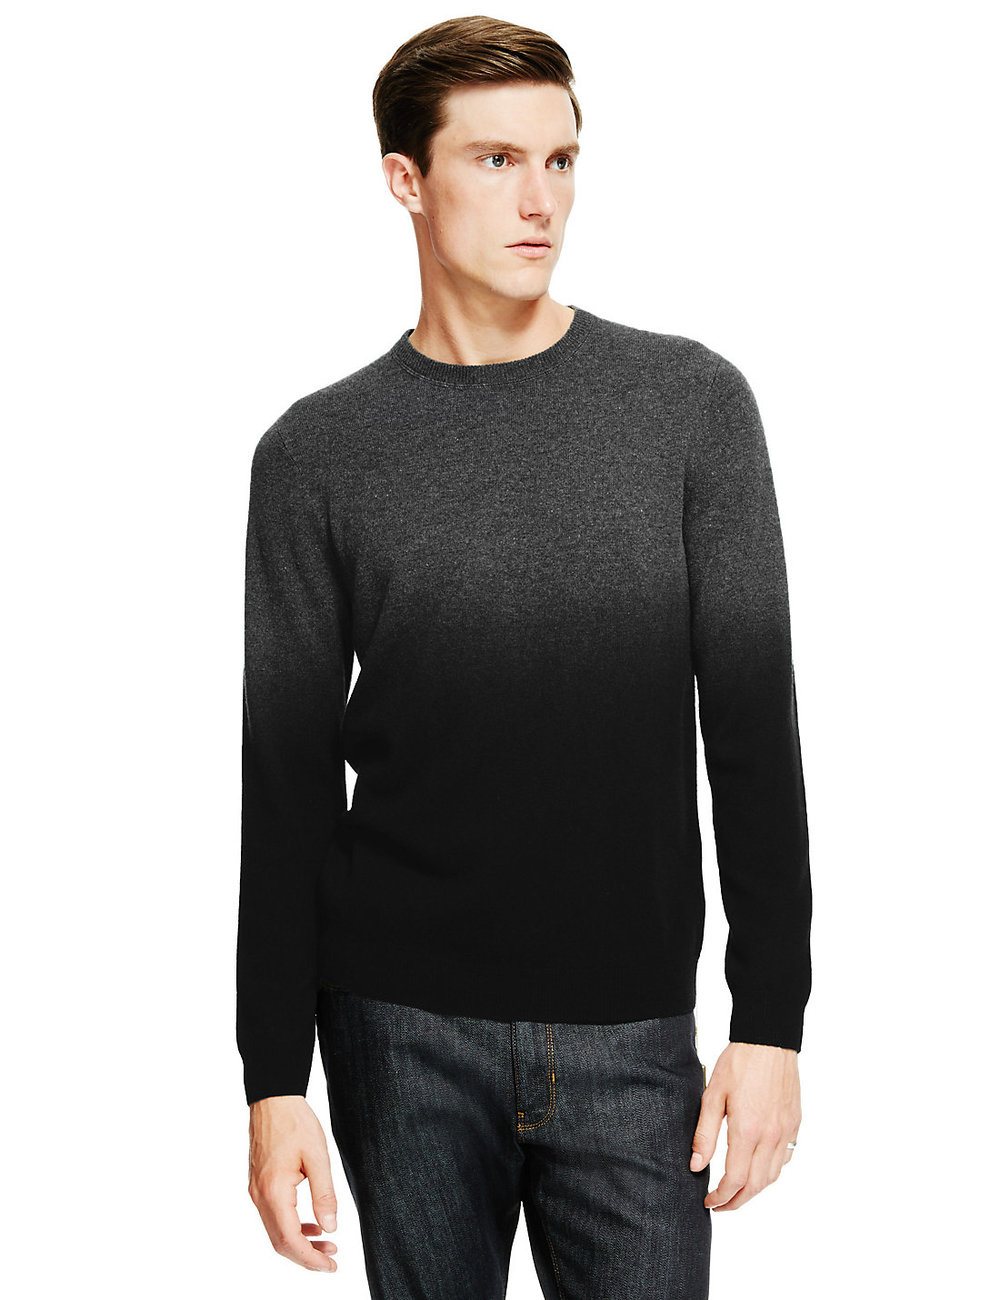 Marks & Spencer Autograph | Grey ombre jumper | Sam Squire UK Male fashion & Lifestyle blogger